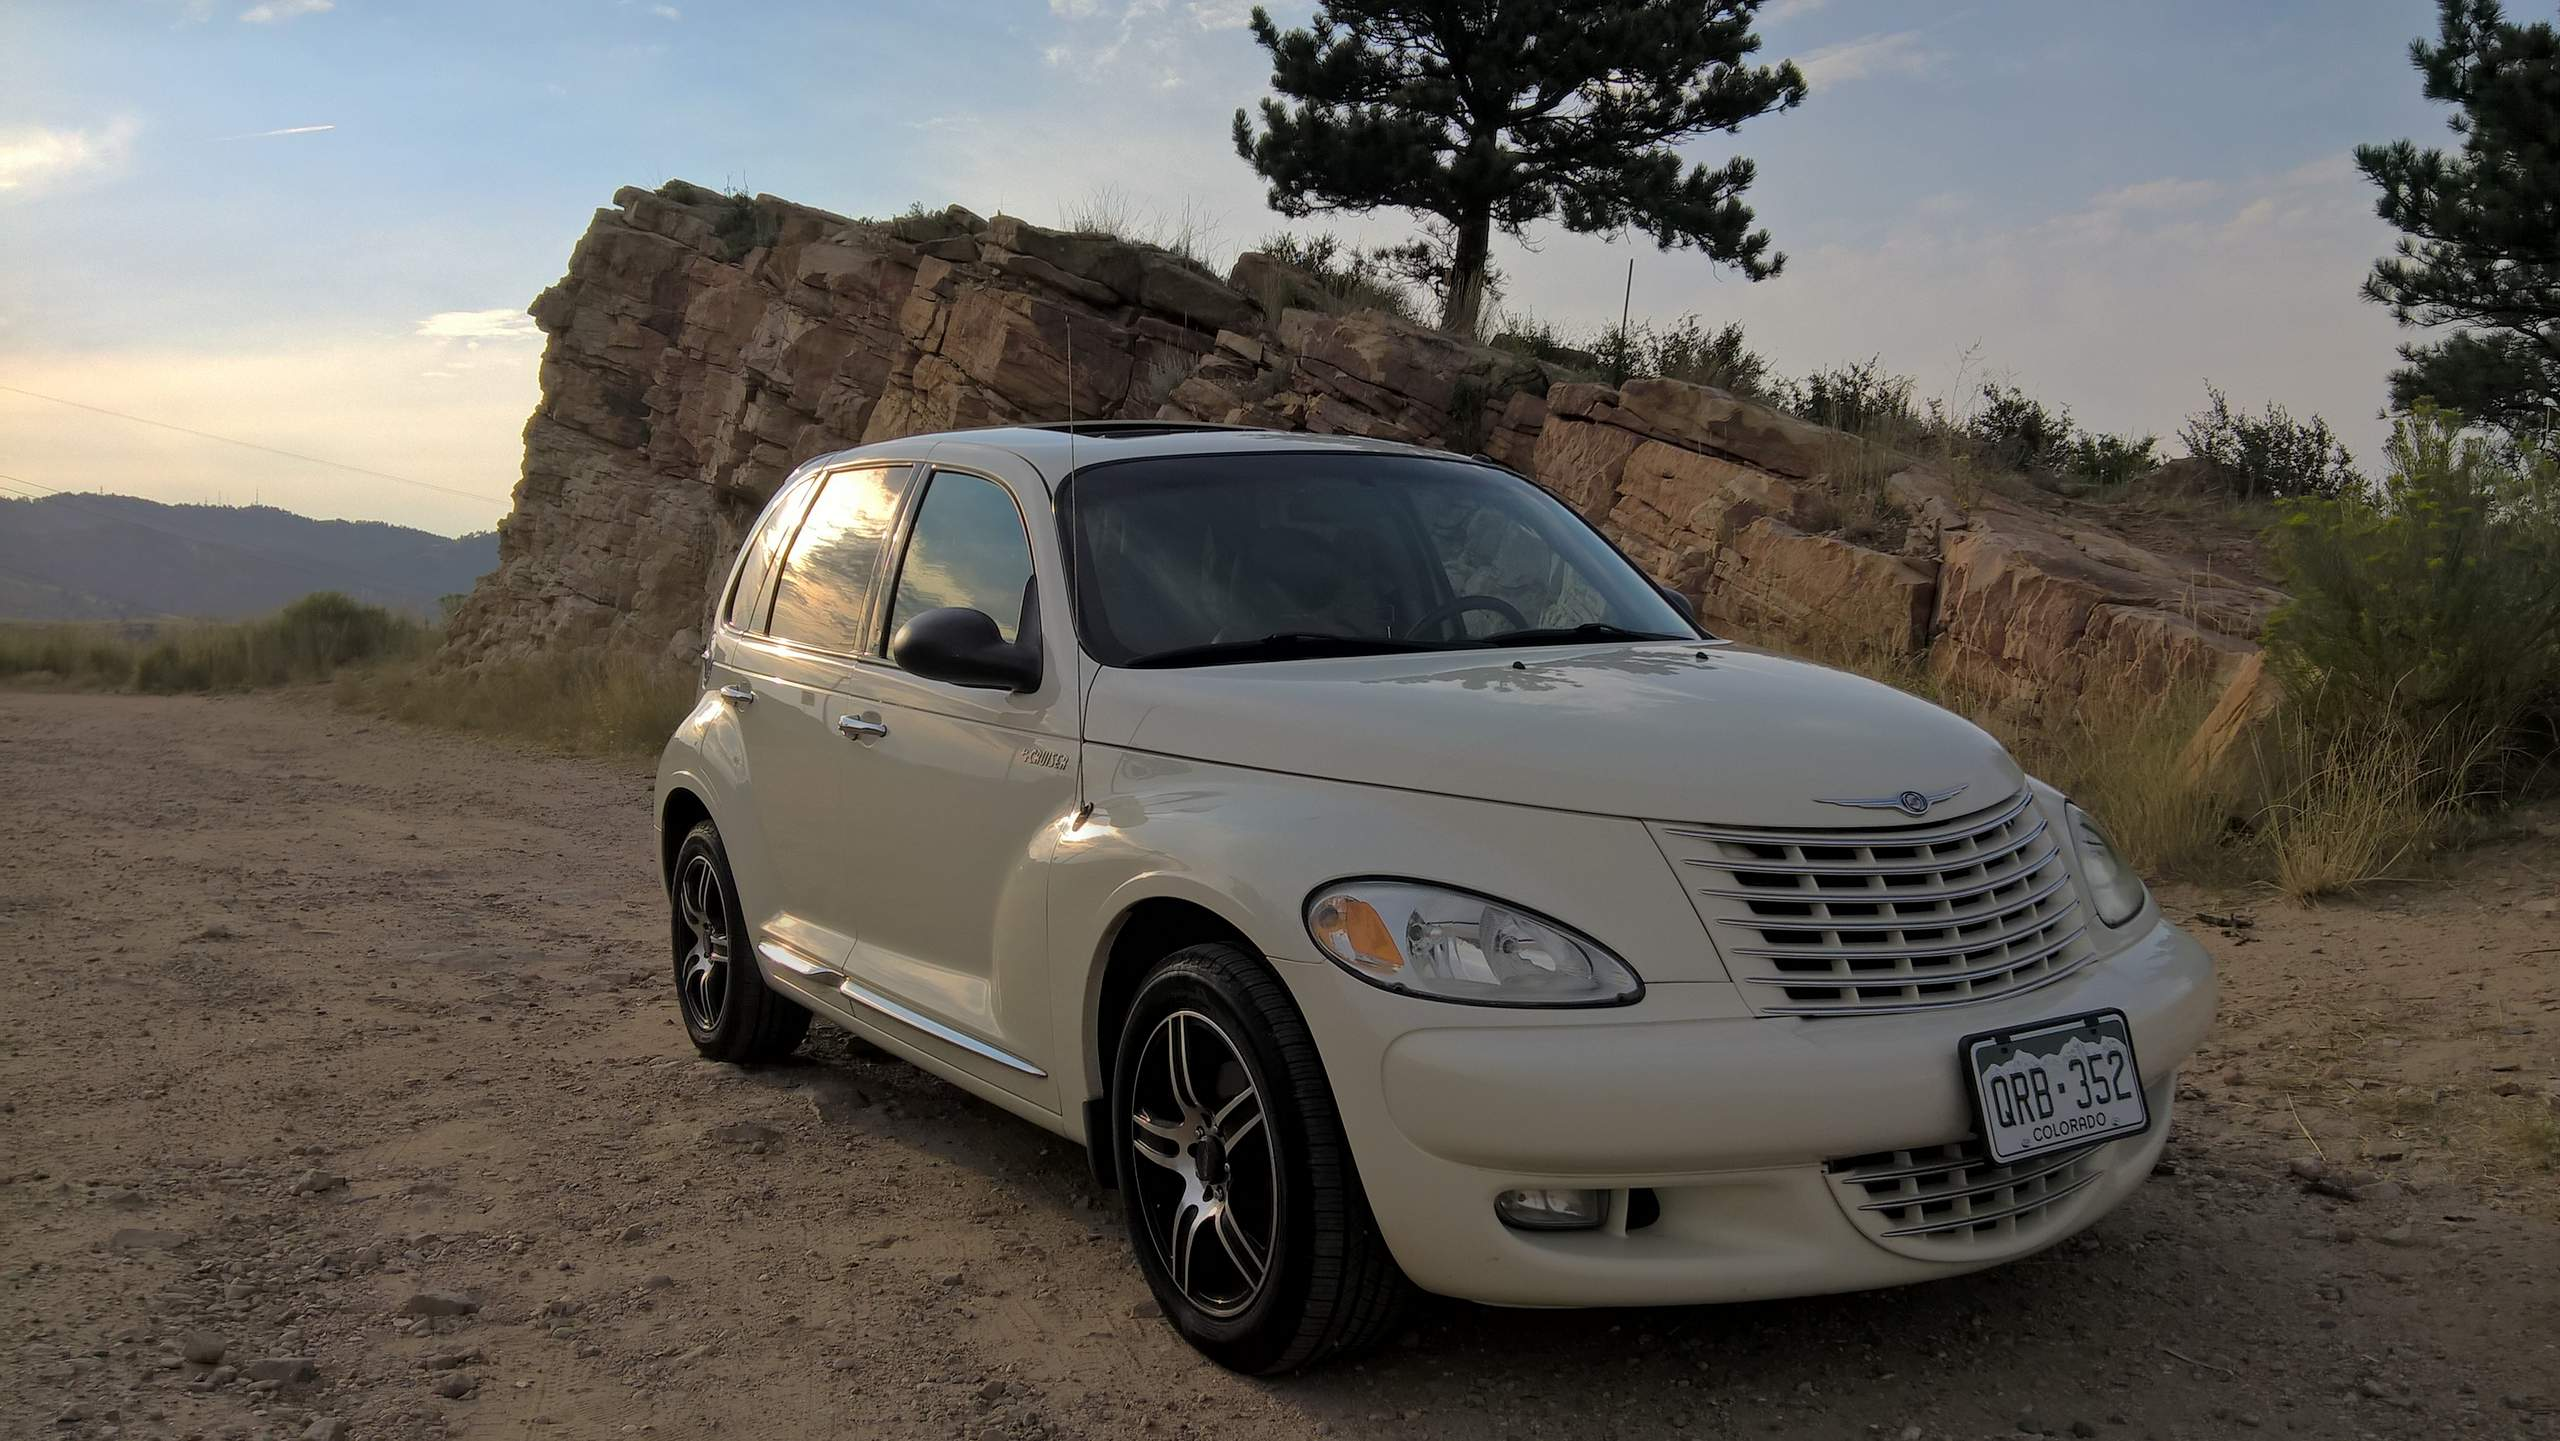 2005 chrysler pt cruiser gt. Black Bedroom Furniture Sets. Home Design Ideas